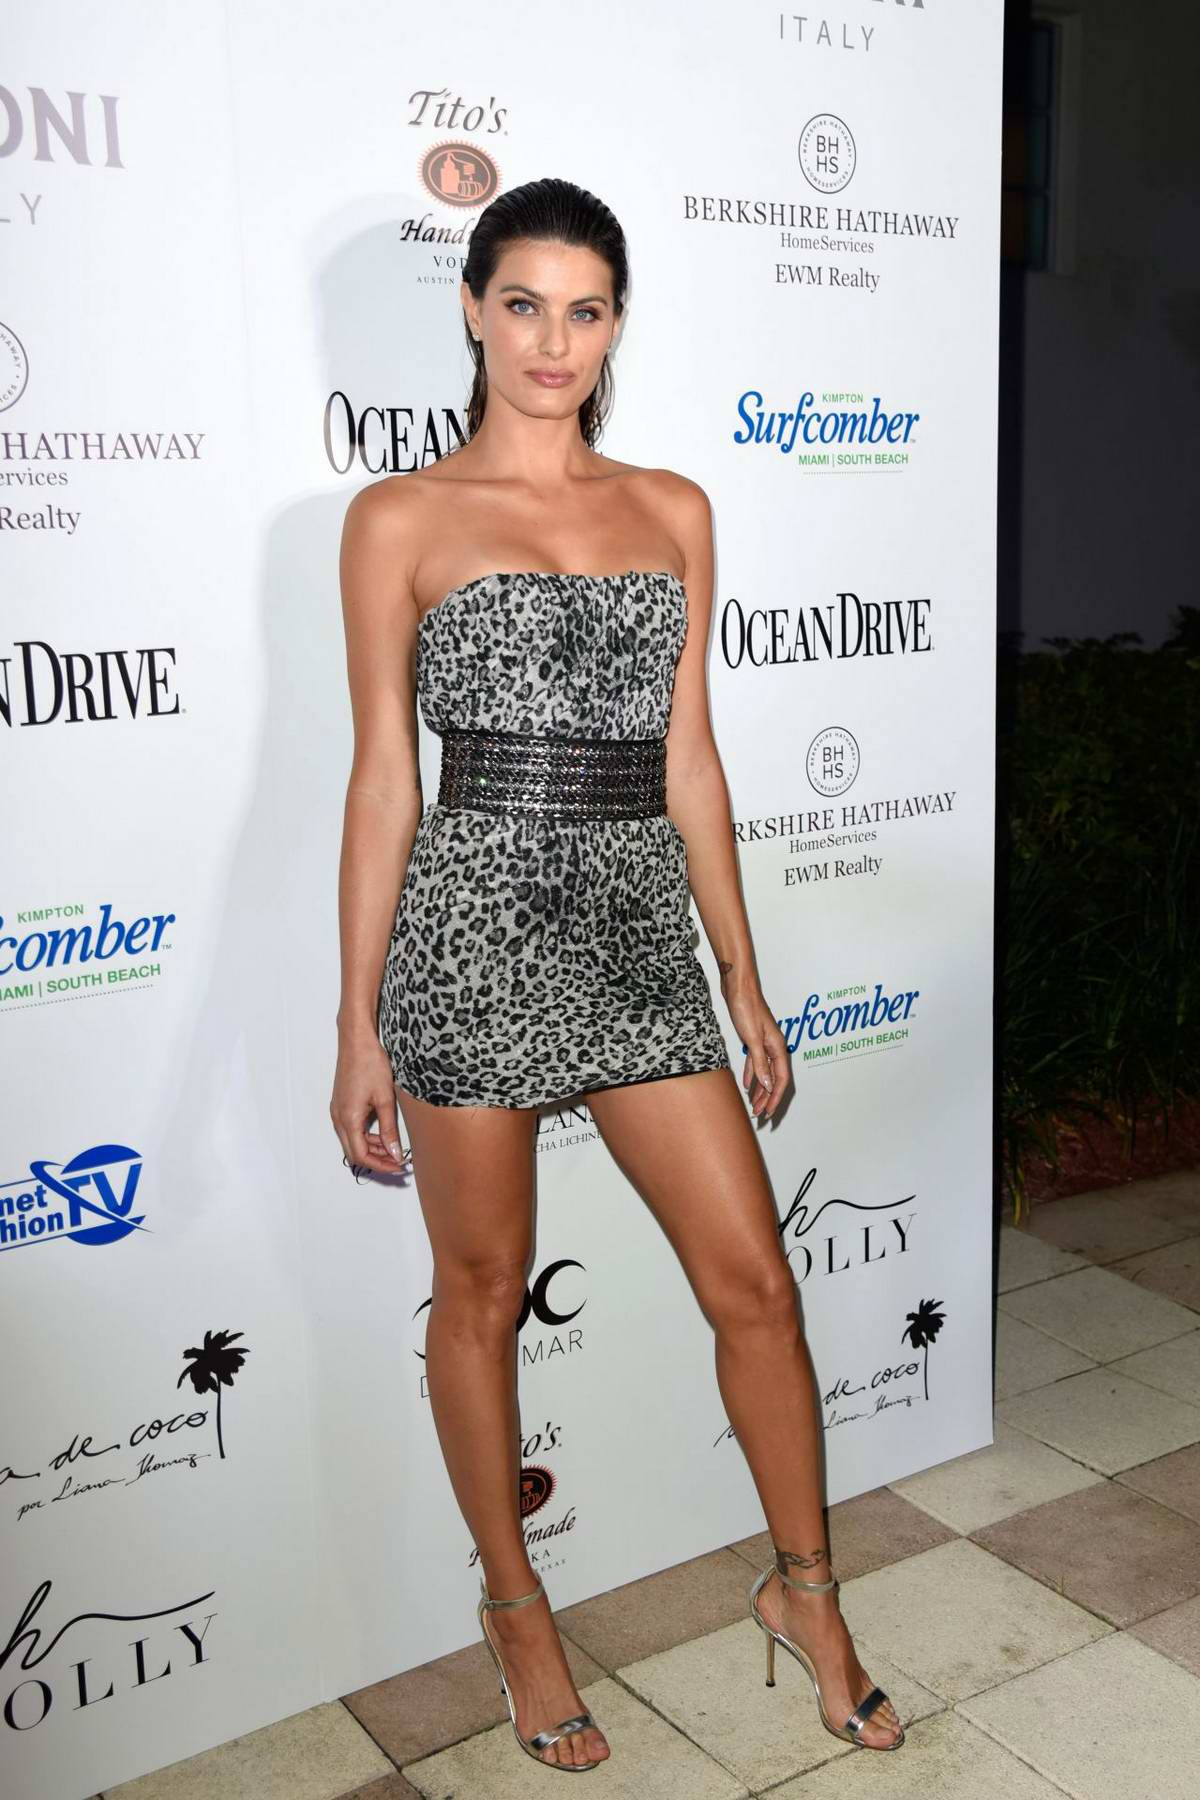 Isabeli Fontana attends the Miami Swim Week Annual Swim Issue release party in Miami, Florida